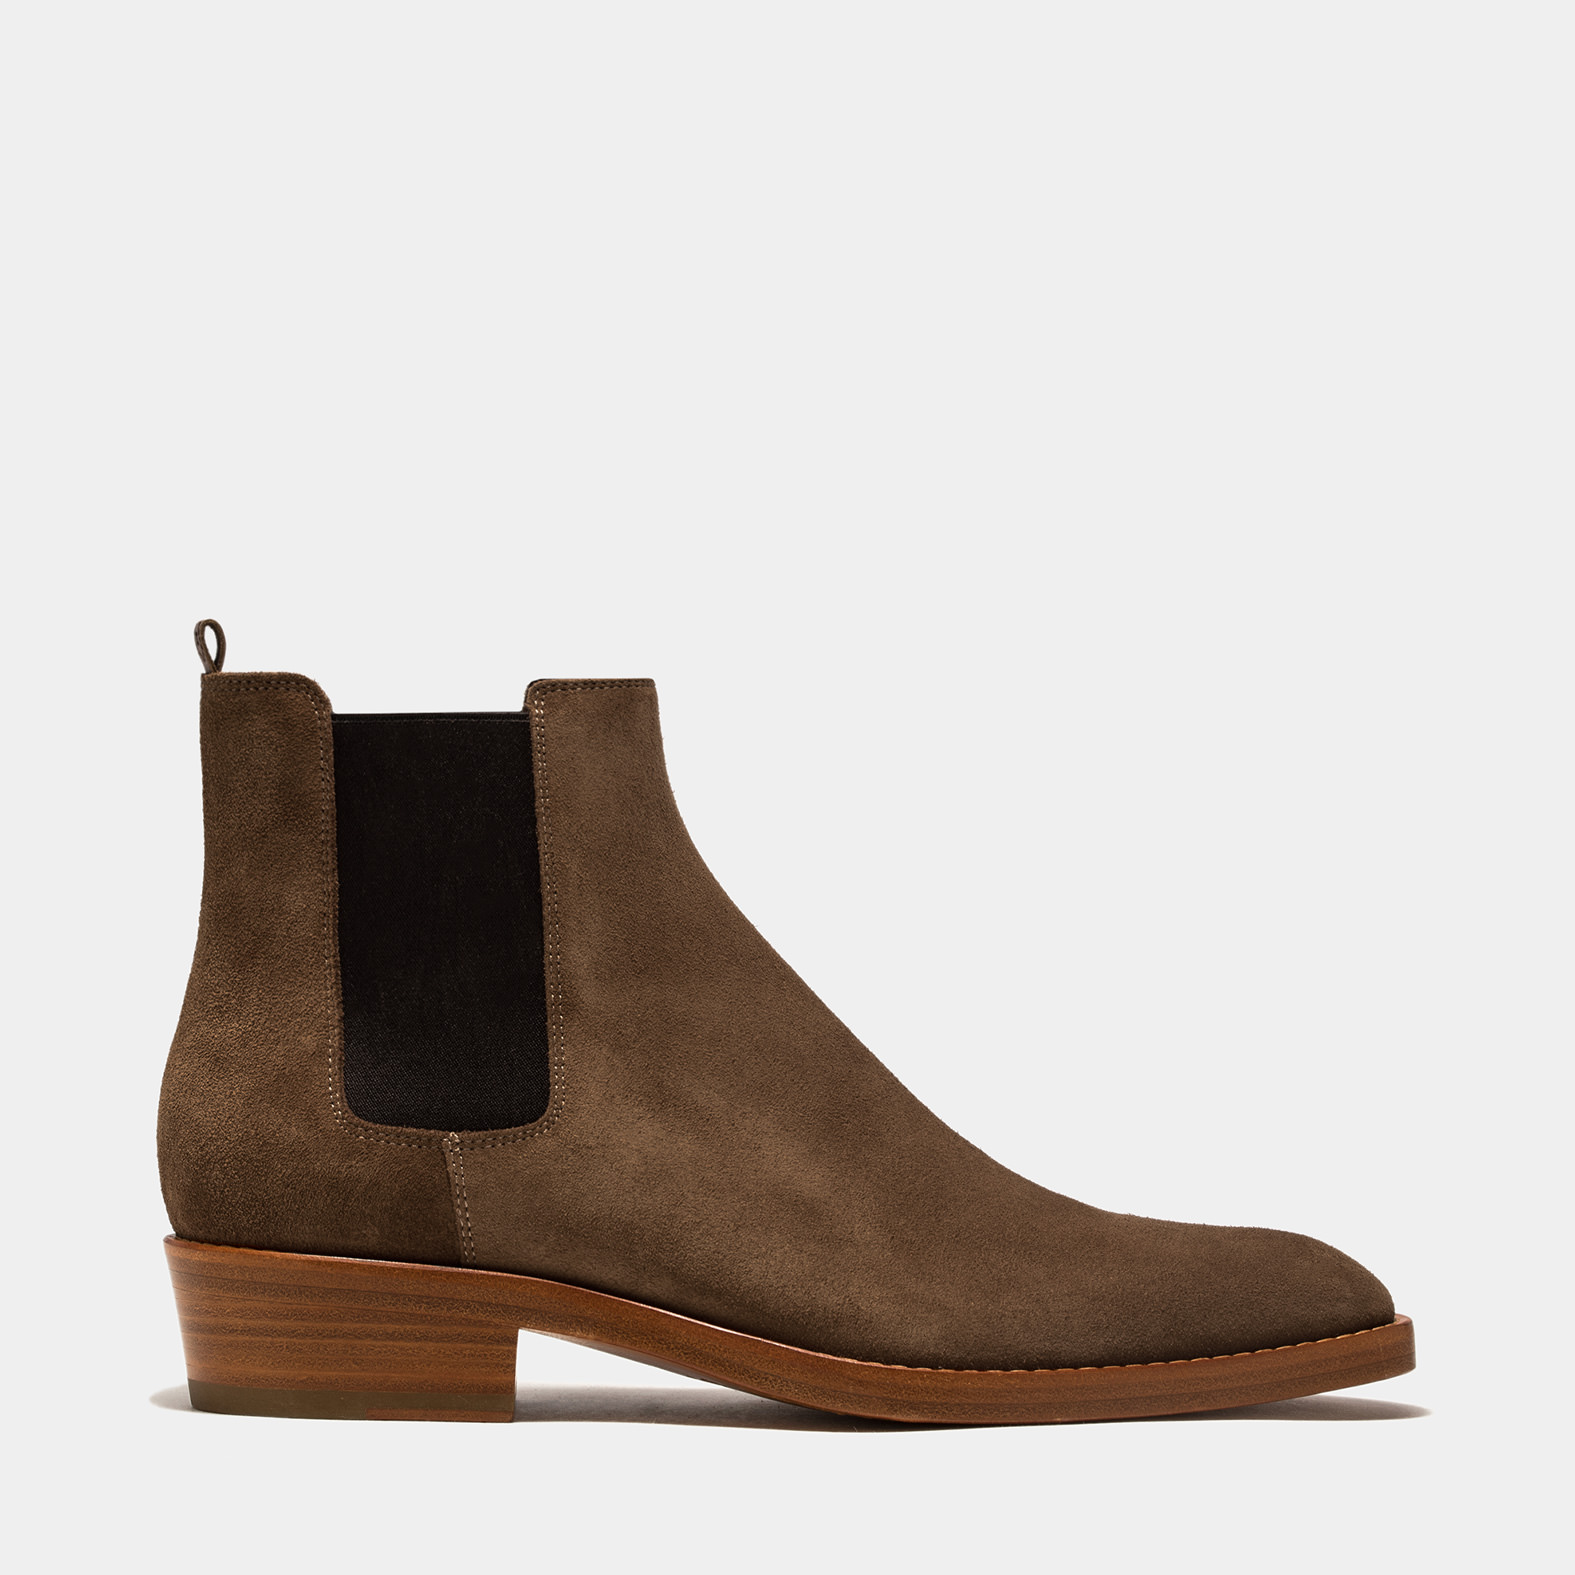 BUTTERO: POLACCO QUENTIN IN SUEDE SIGARO